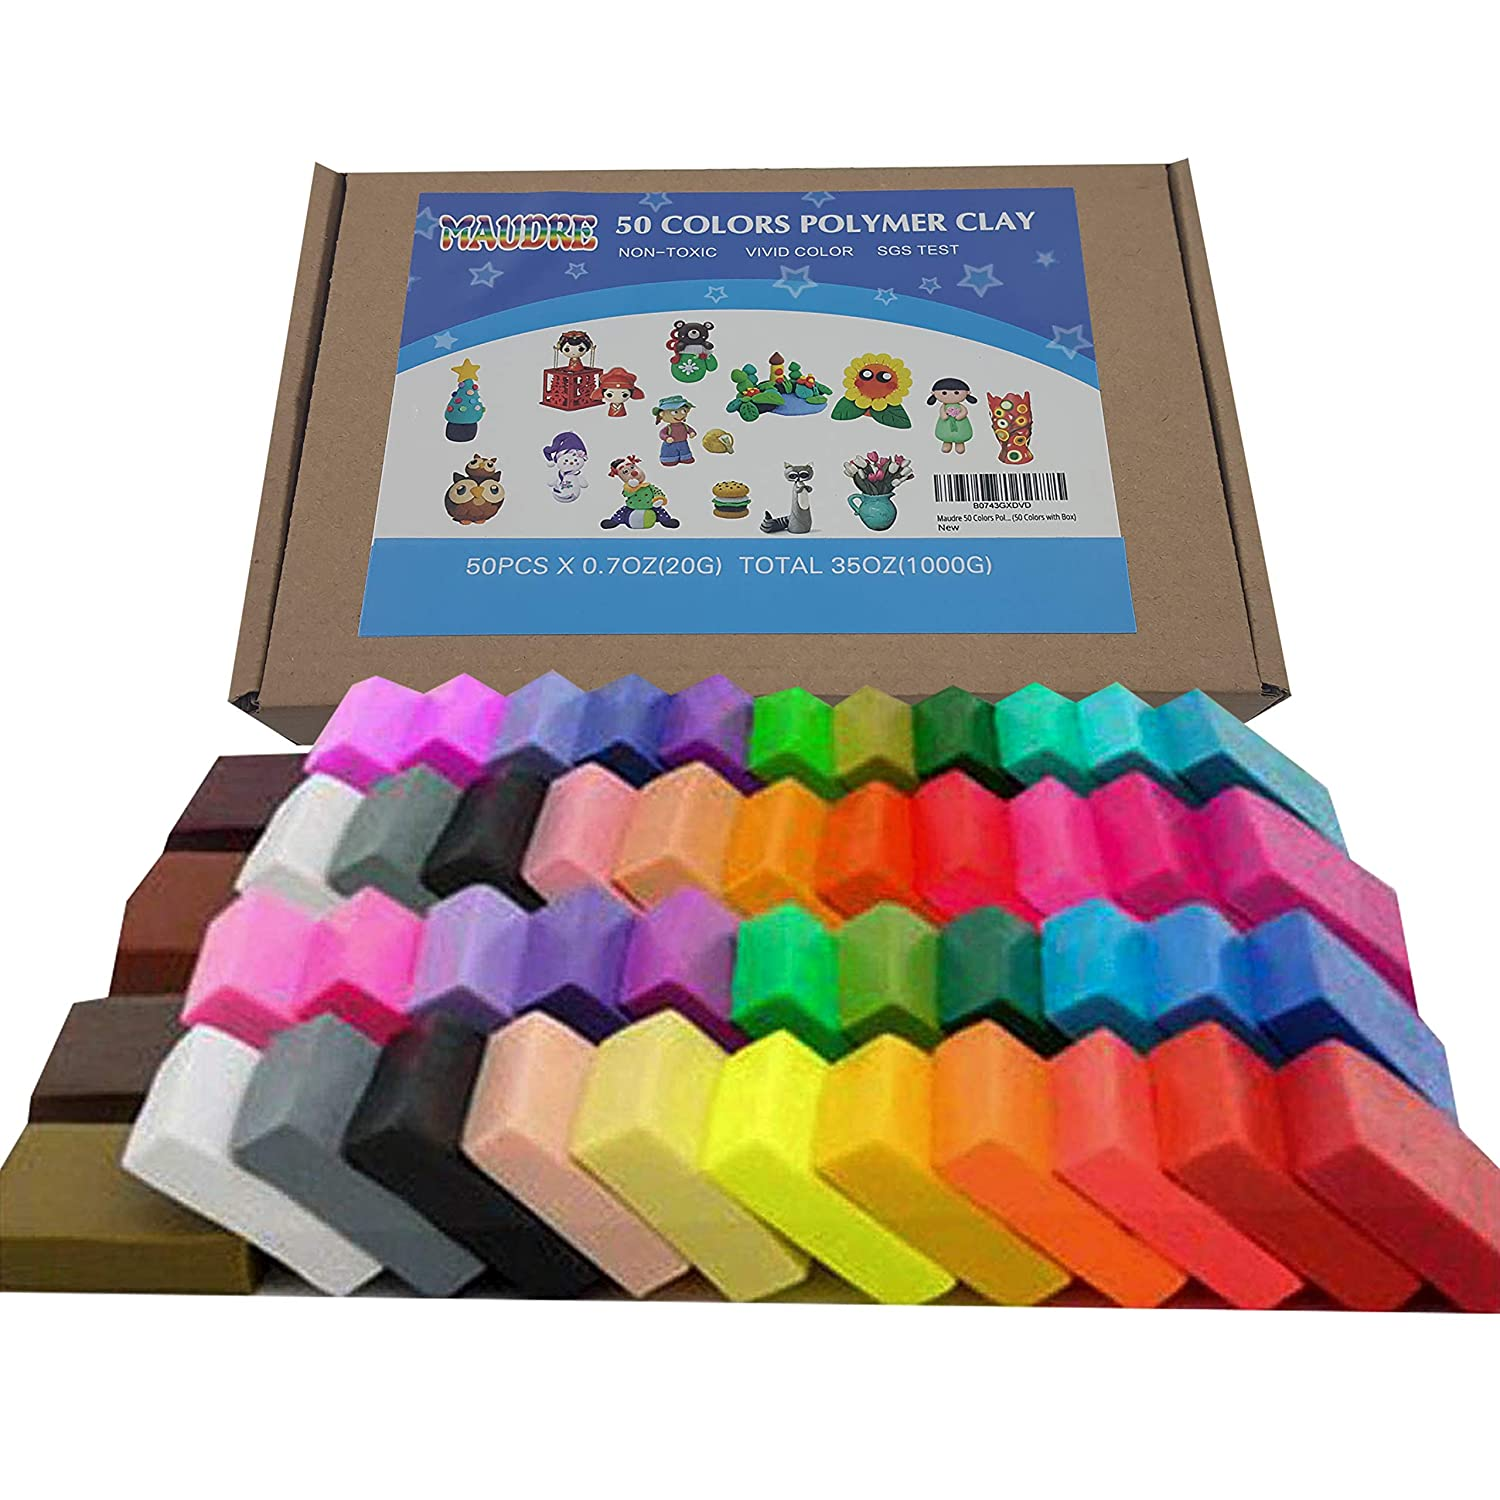 Maudre 50 Colors Polymer Clay, DIY Soft Molding Craft Oven Baking Clay Blocks Birthday Gift for Kids Adult Christmas Gifts(50 Colors with Box)